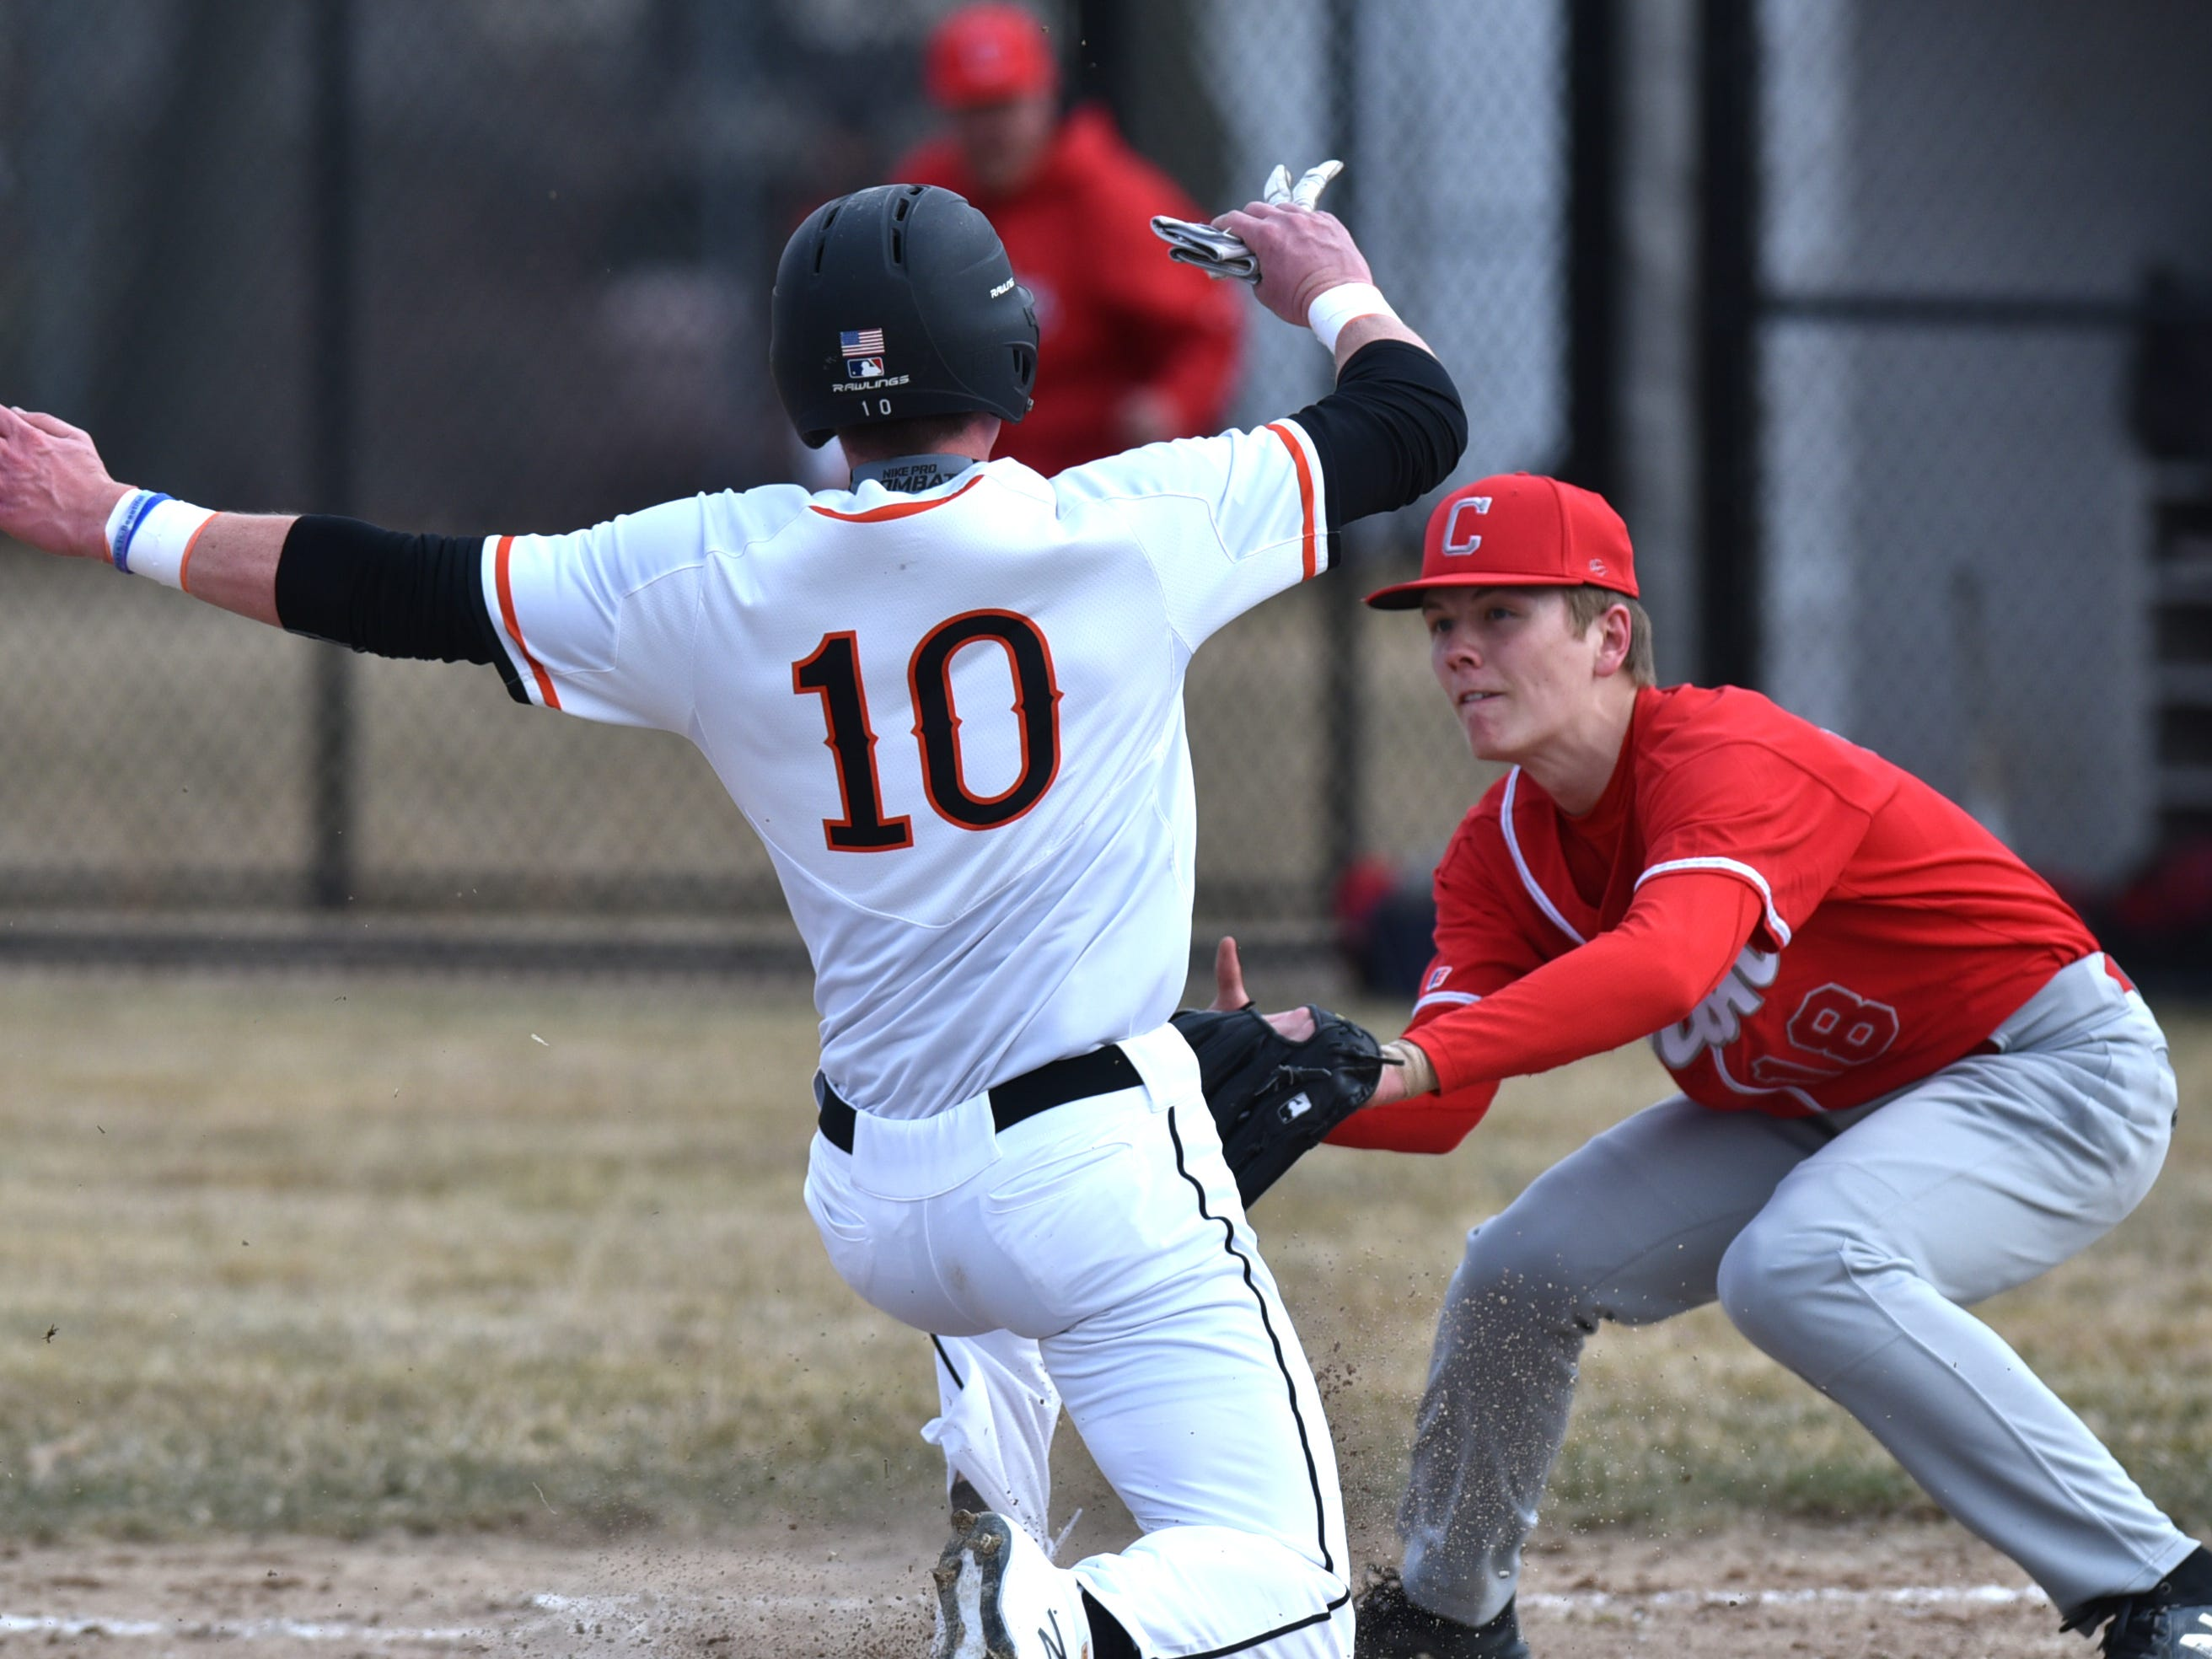 Brighton's Alex DePue is tagged out by Canton's Jake Rubis at home on Tuesday, April 2, 2019.